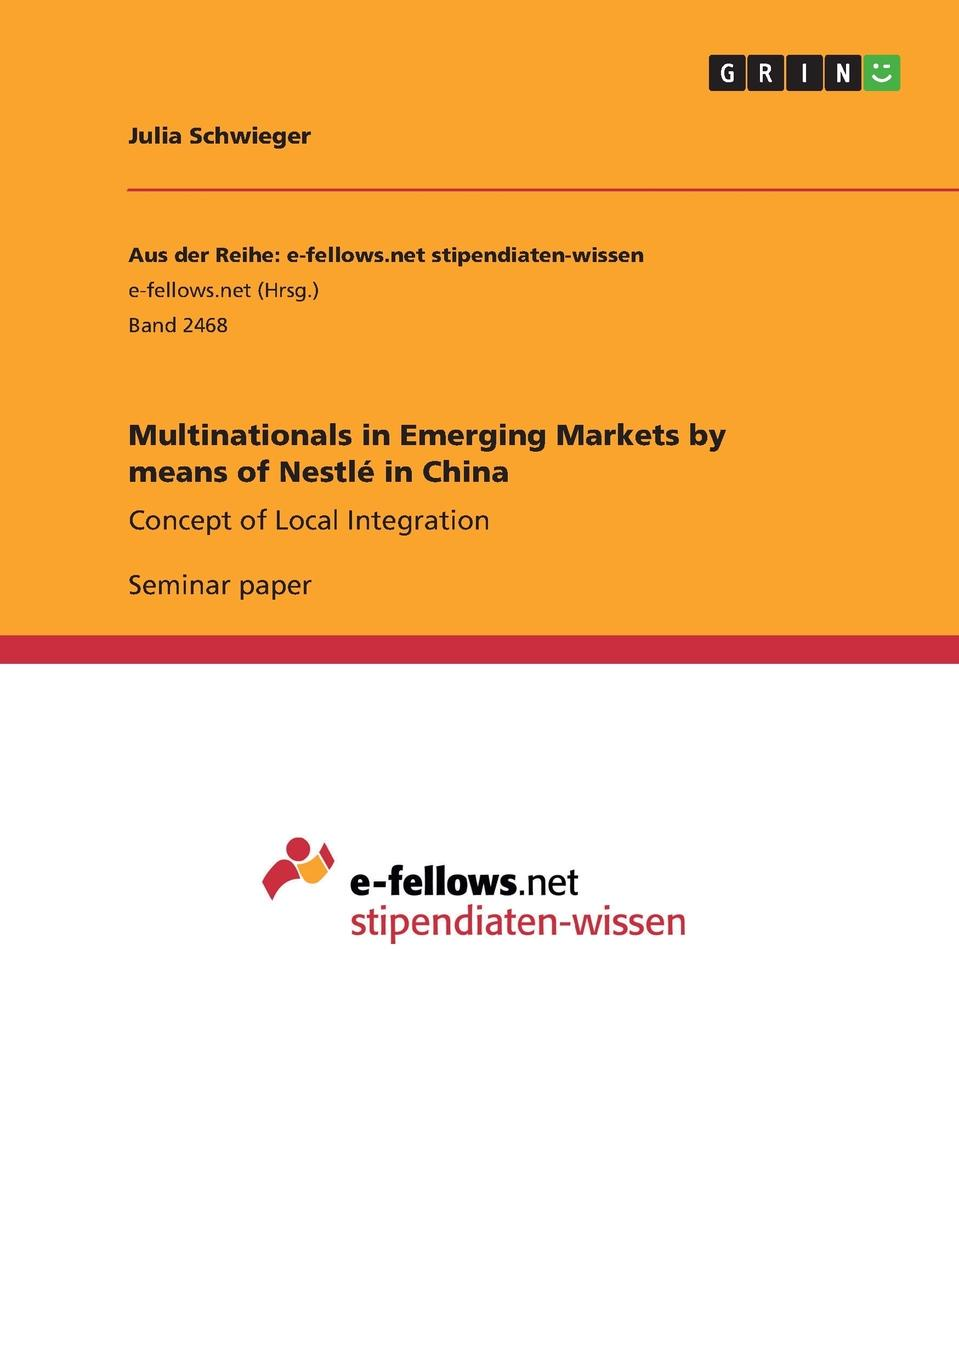 Julia Schwieger Multinationals in Emerging Markets by means of Nestle in China halil kiymaz market microstructure in emerging and developed markets price discovery information flows and transaction costs